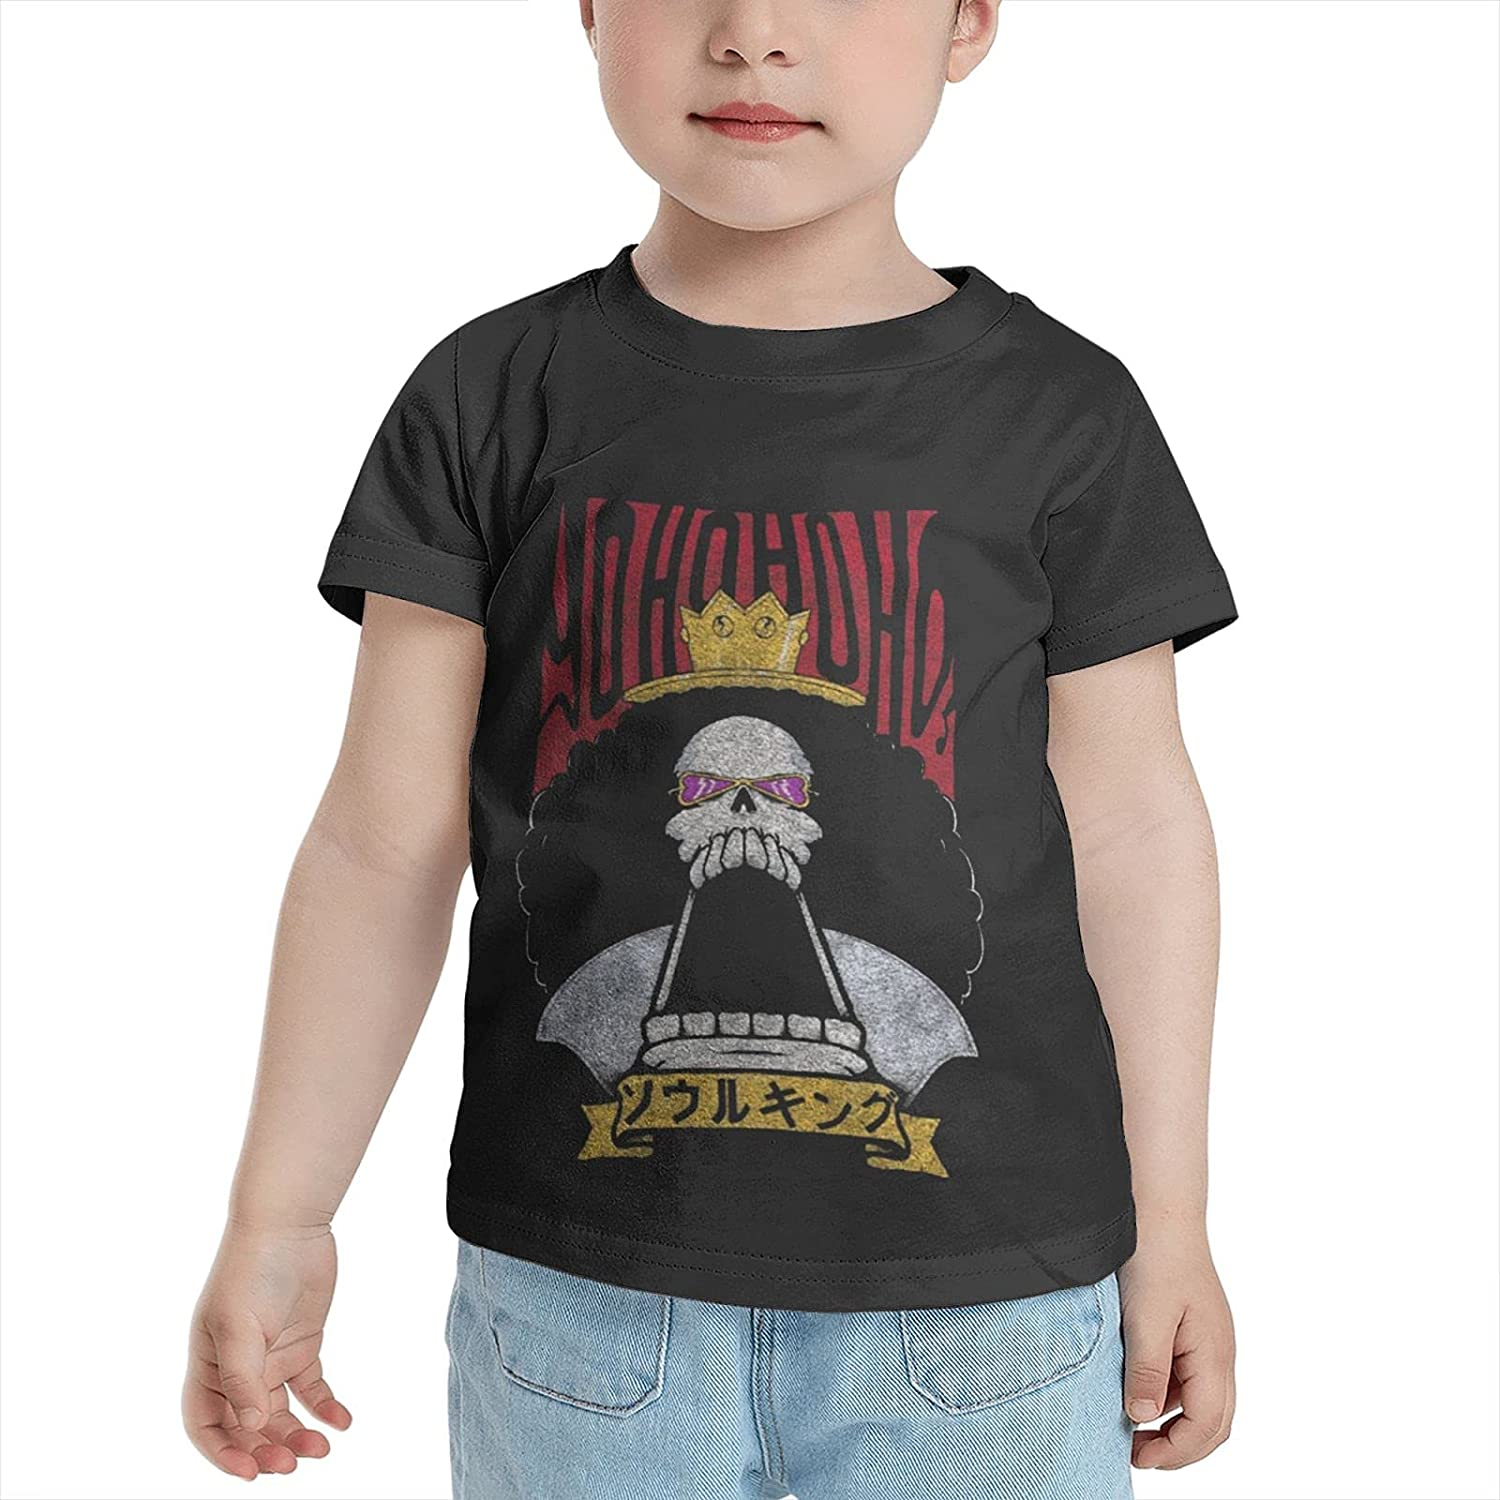 One Piece Brook Little Kid T-Shirt 2-6 Years Old Graphic Anime Tshirts Tops